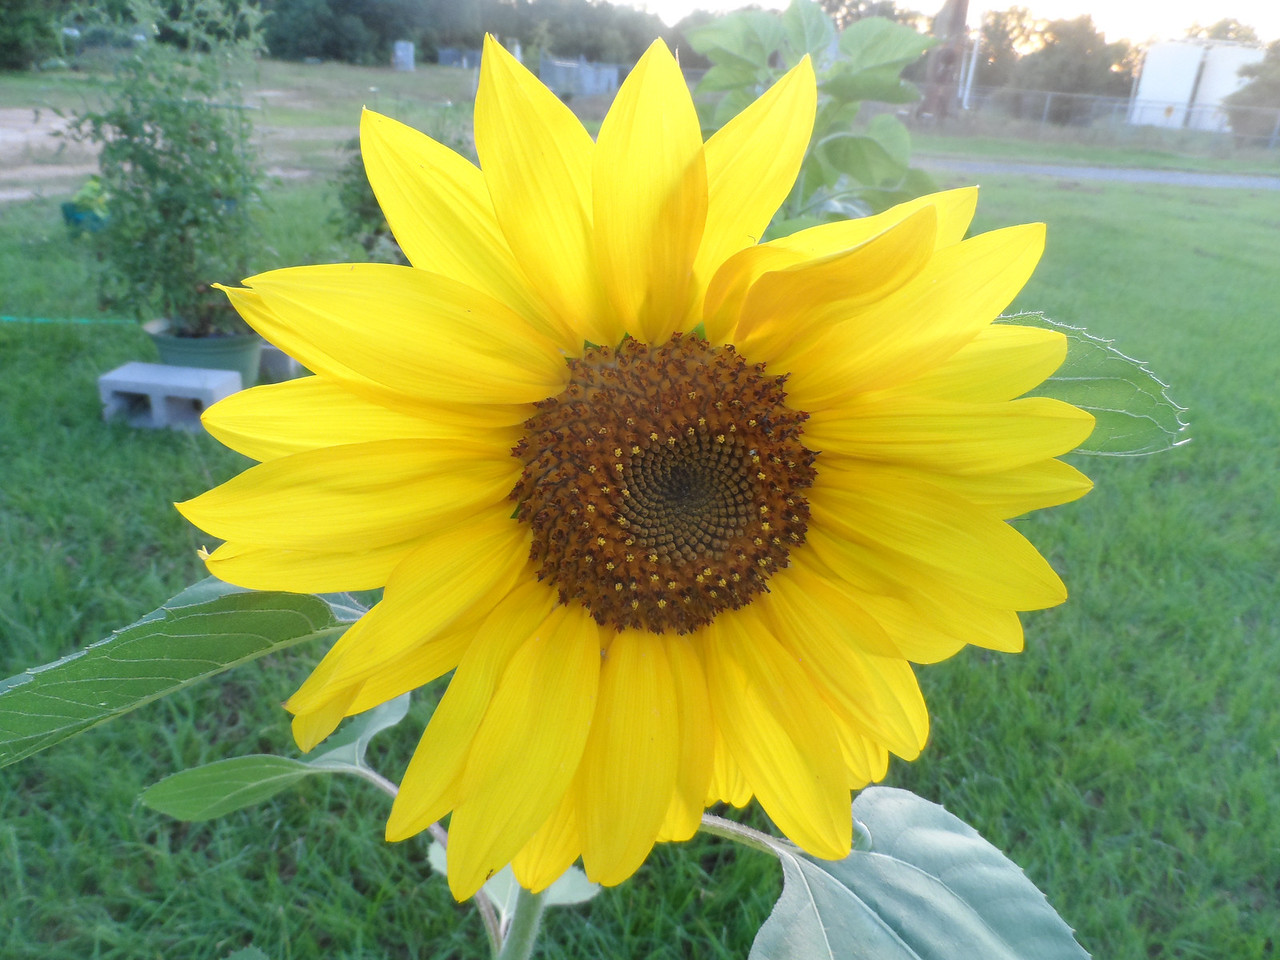 Sunflower's are awesome!